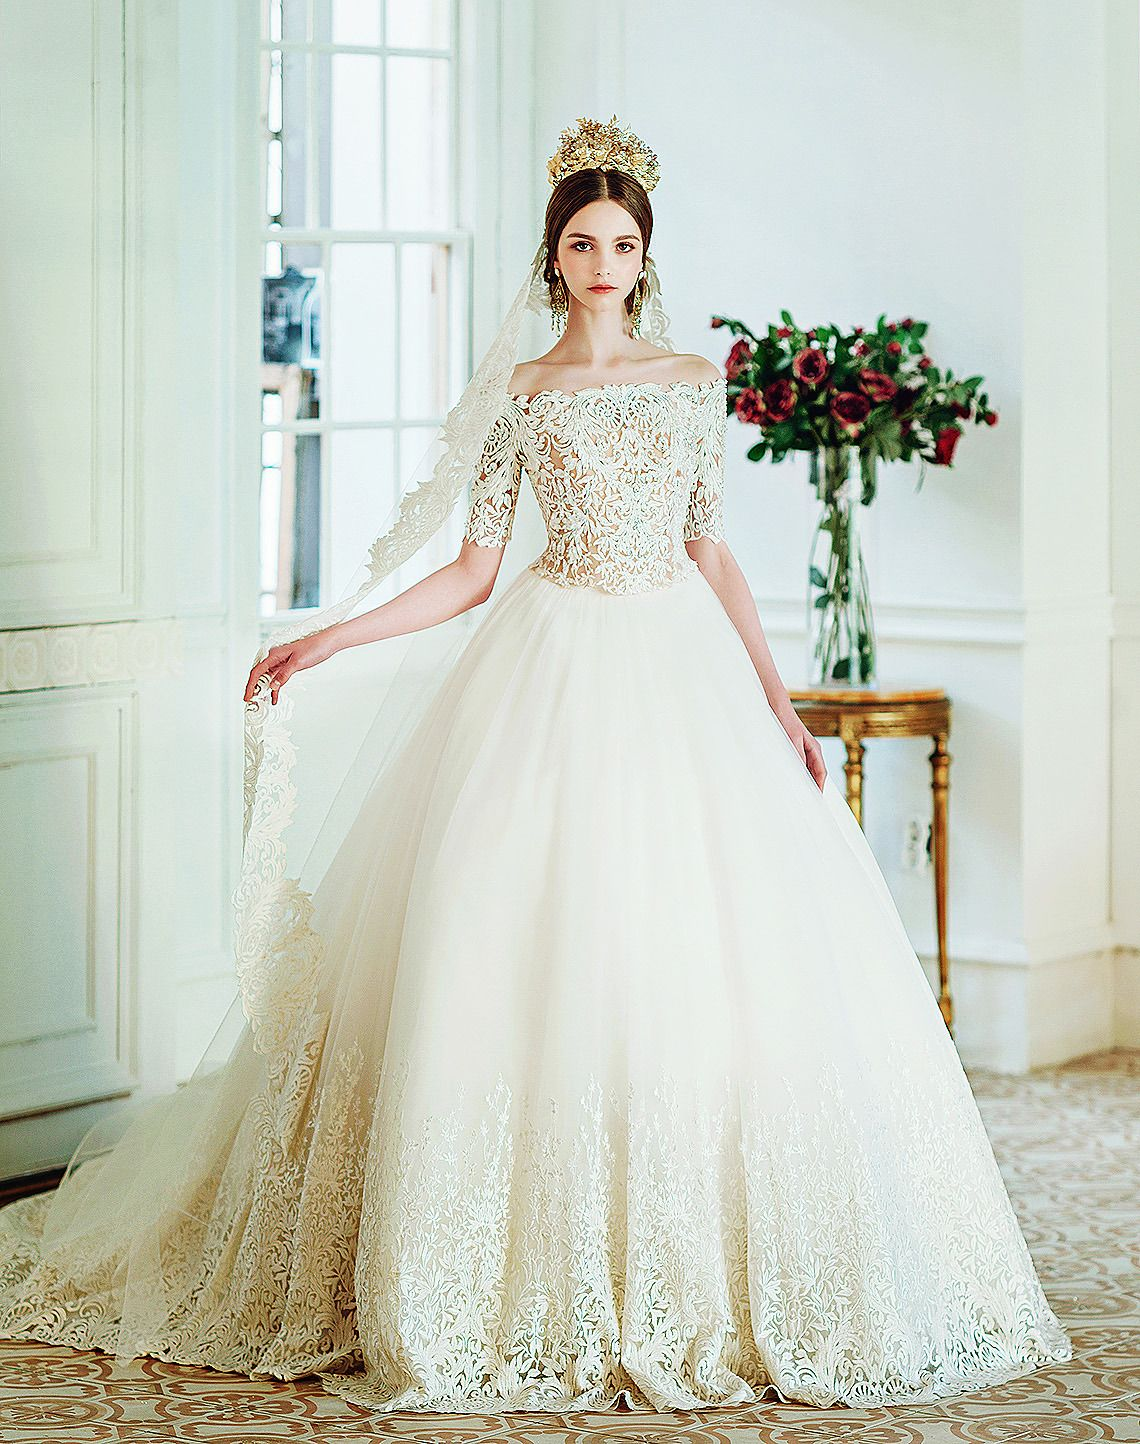 dress | Tumblr | clothes | Pinterest | Ball gowns, Gowns and Clothes